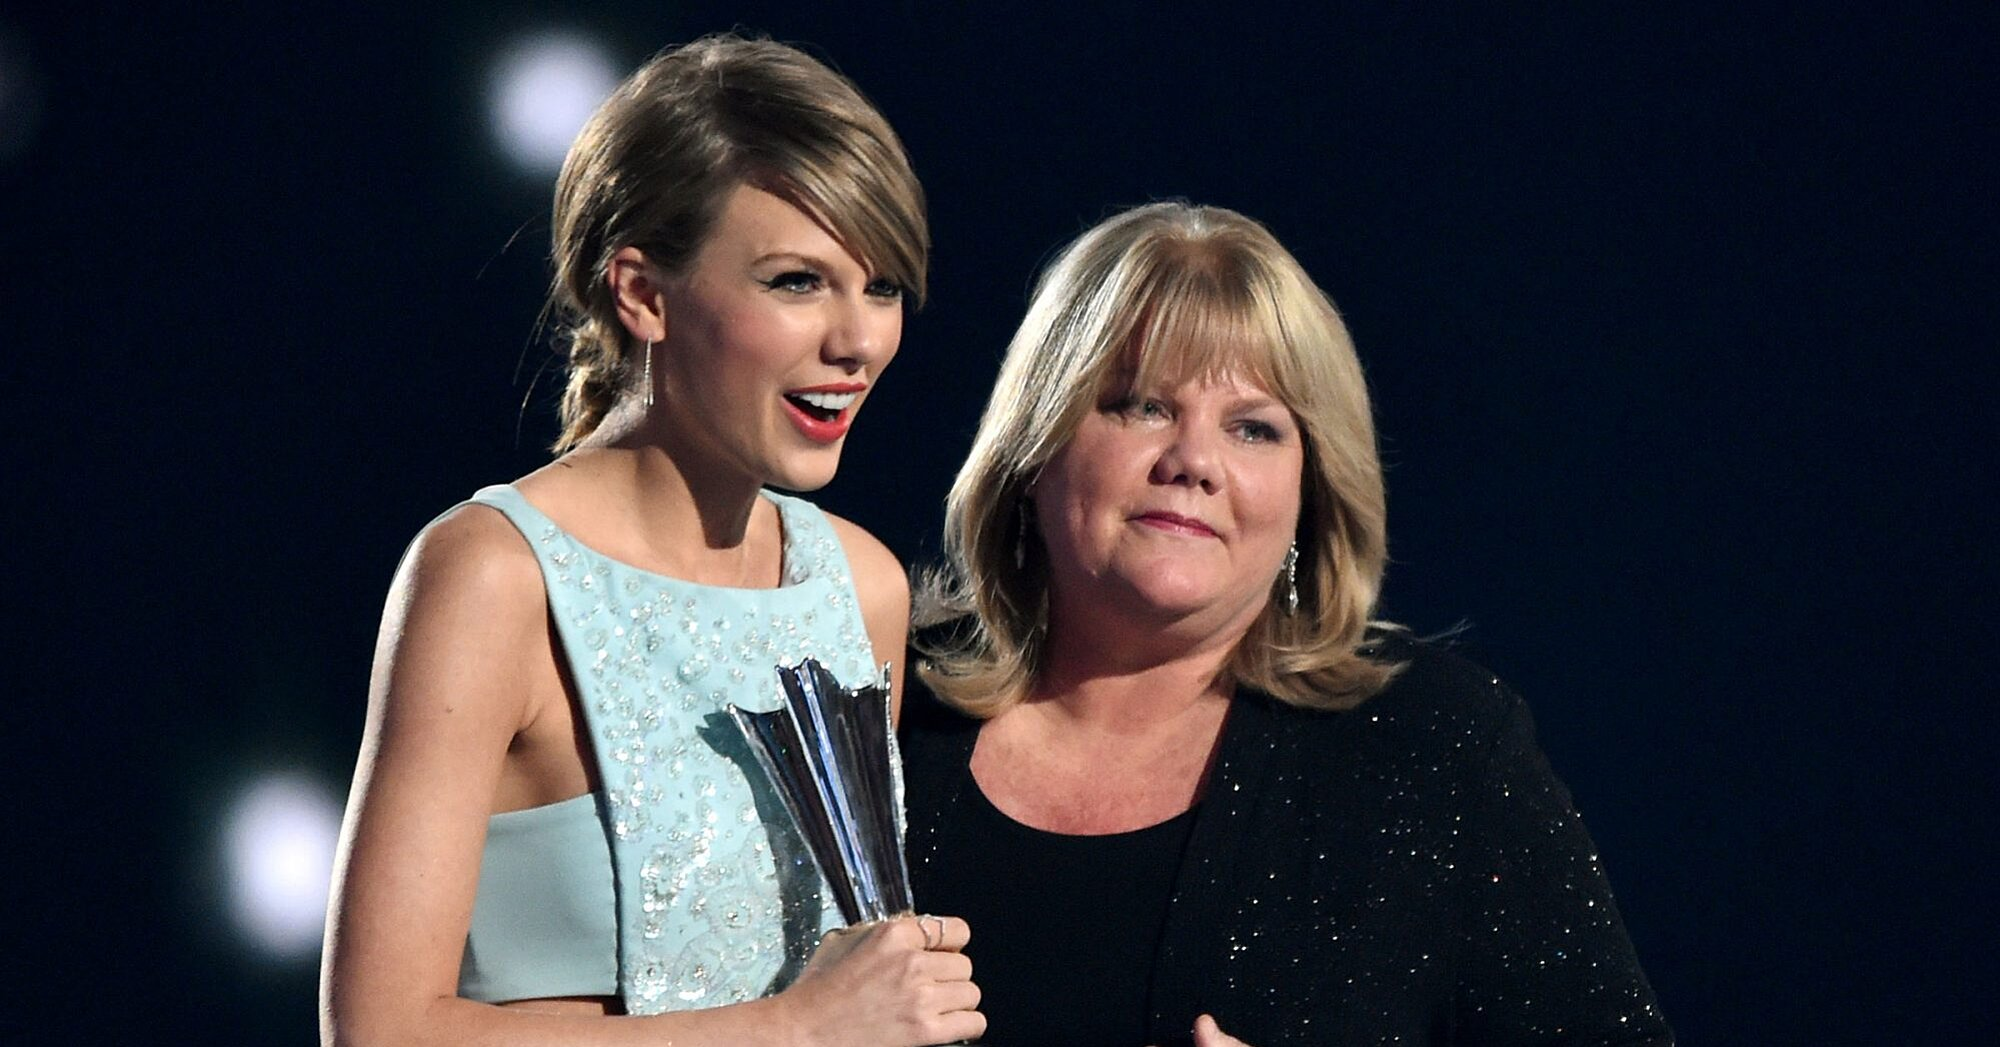 Taylor Swift Reveals Her Mother Has Been Diagnosed With A Brain Tumor Ew Com